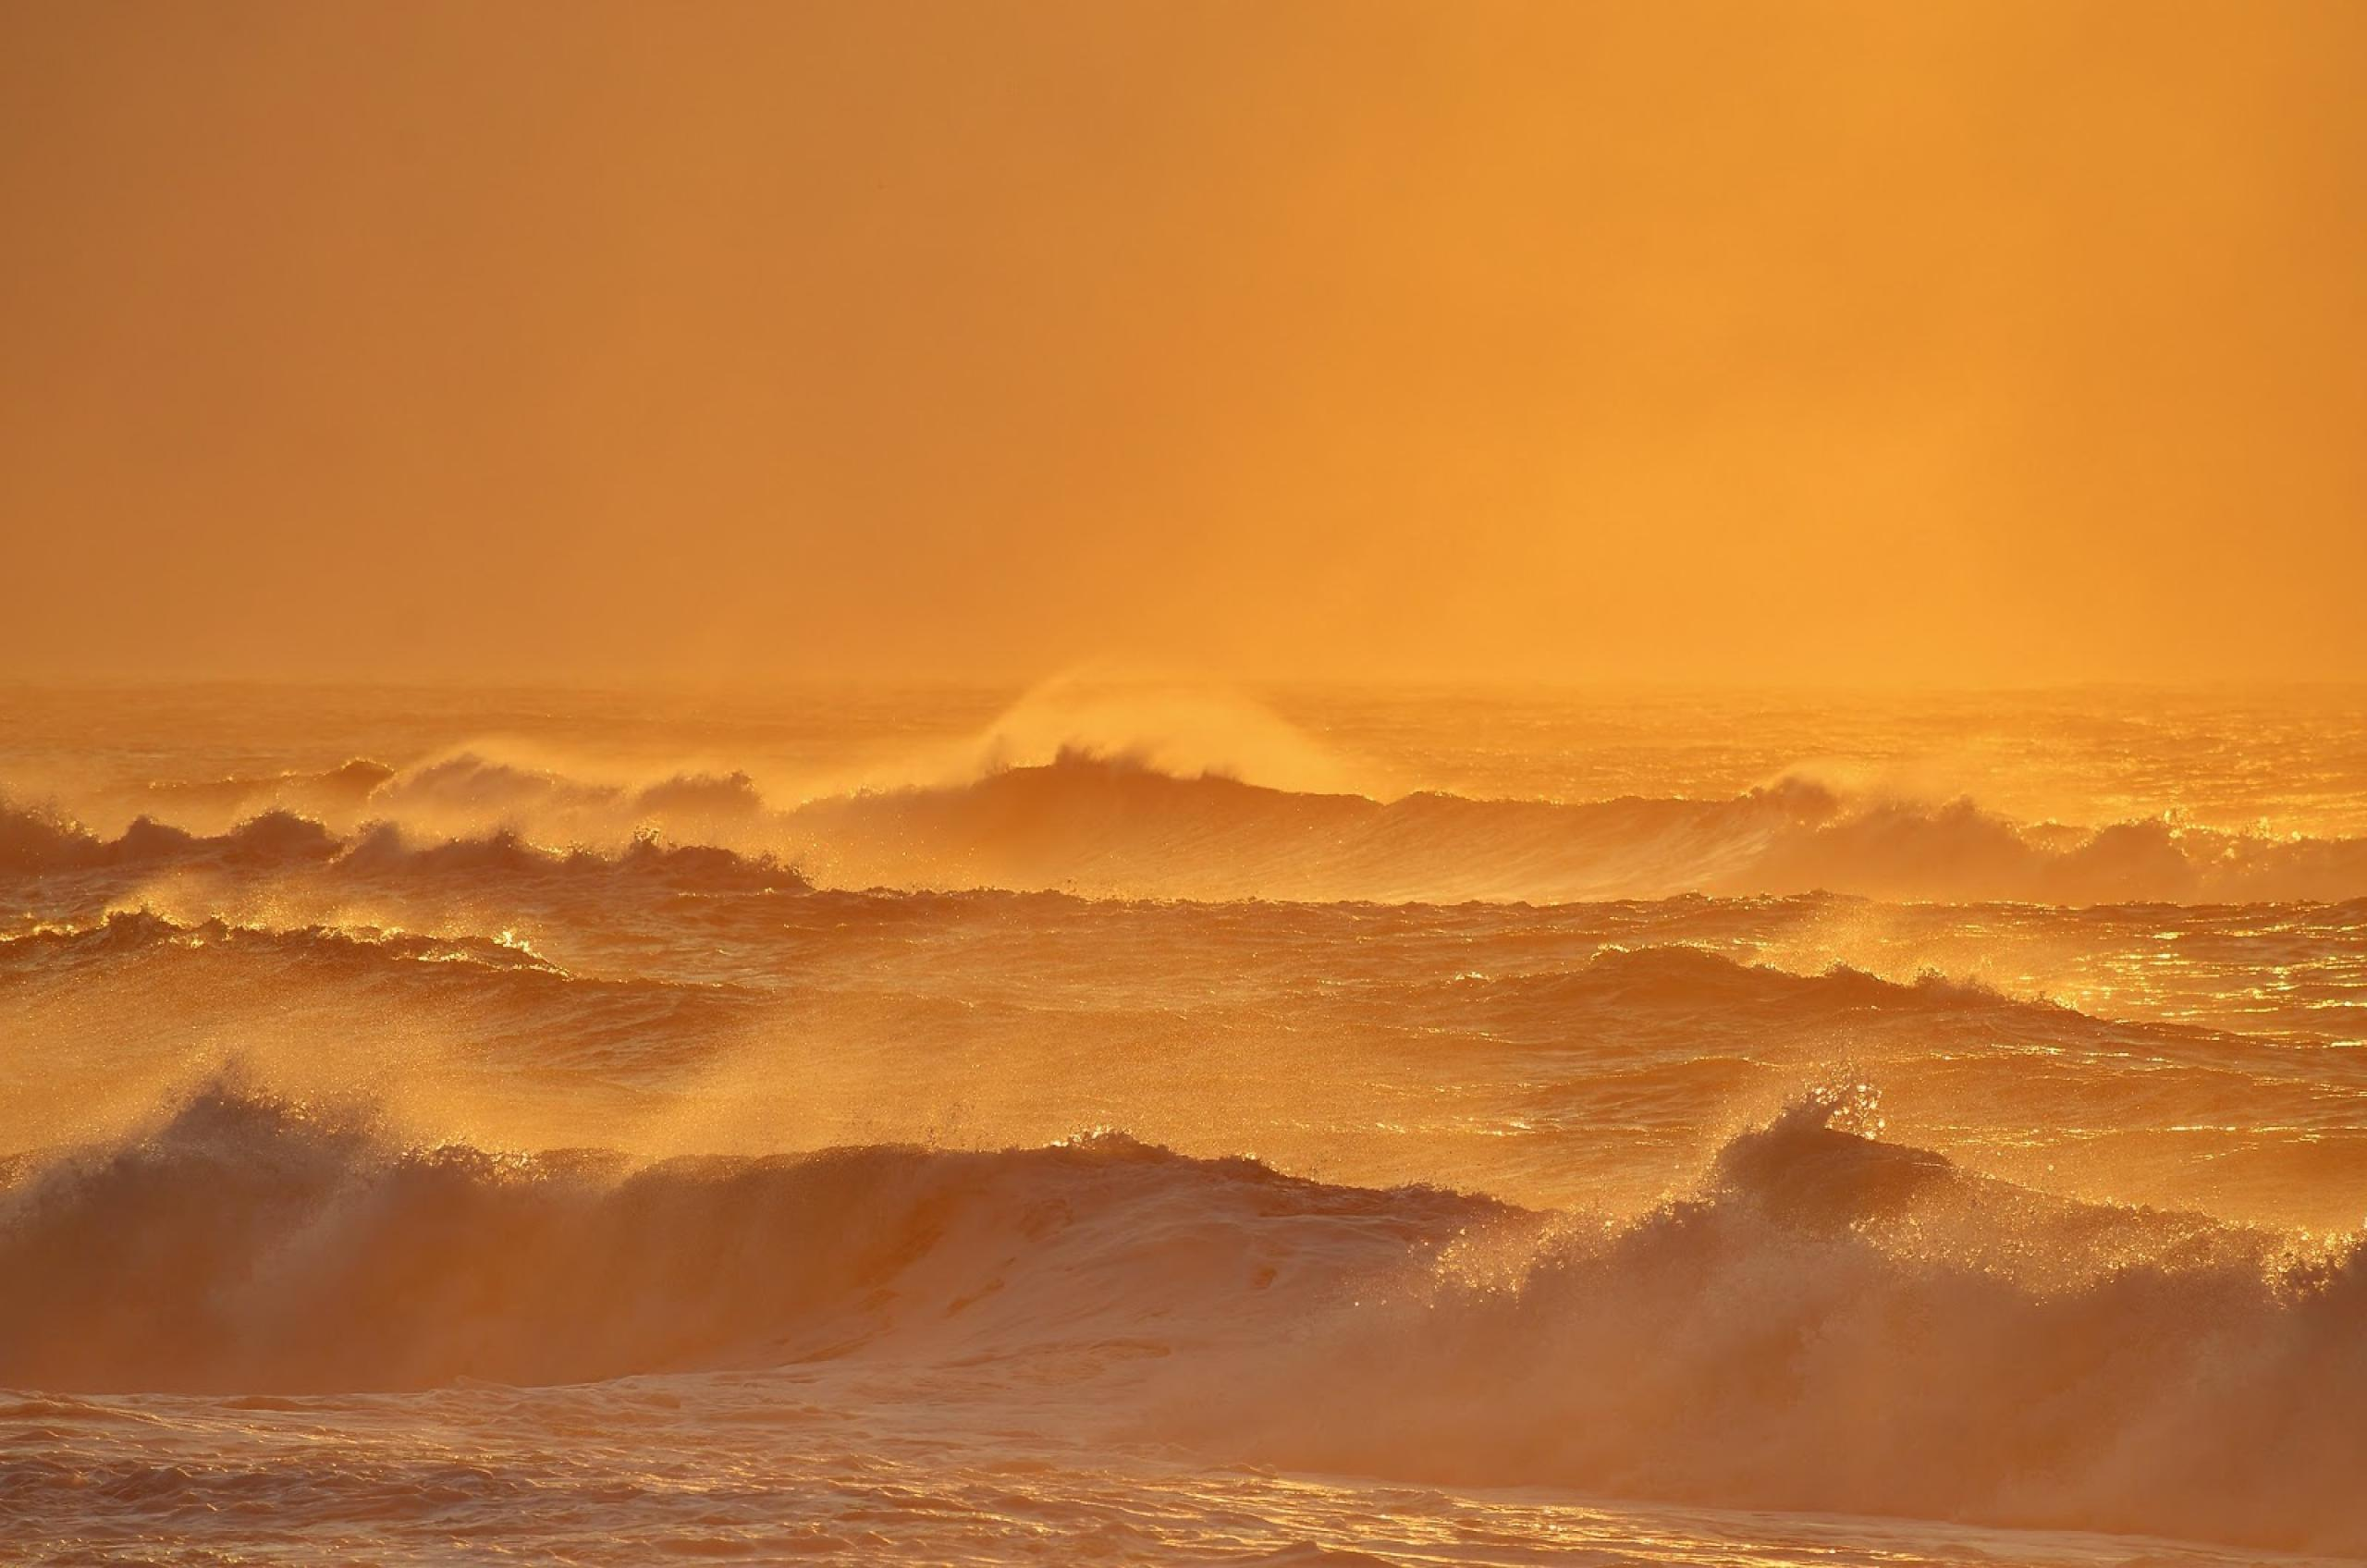 Photo of large ocean waves with an orange hazy sky